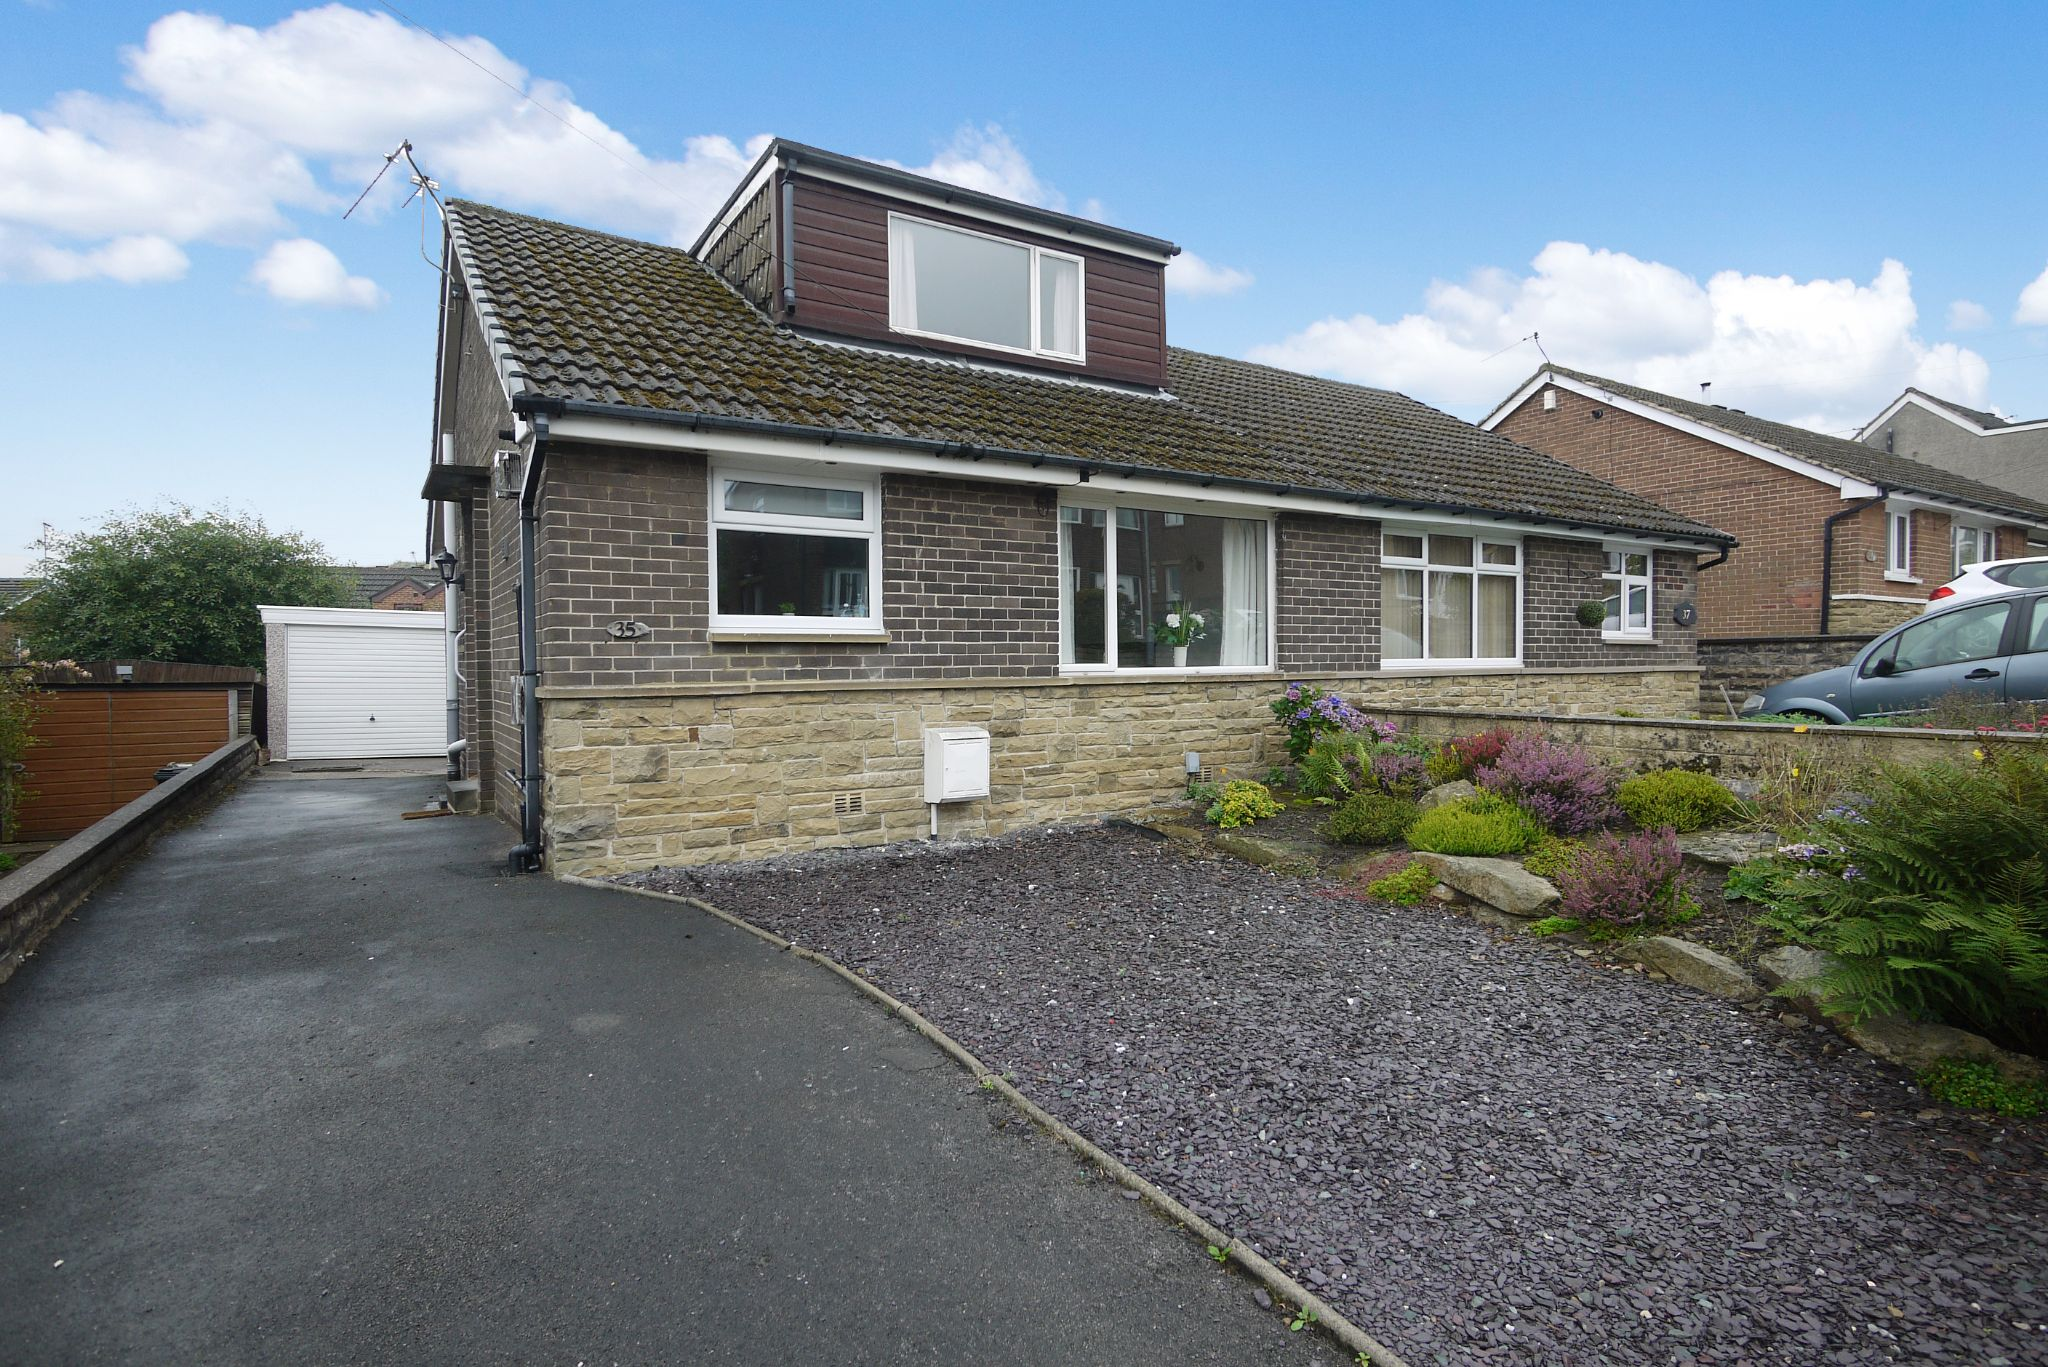 3 bedroom semi-detached bungalow For Sale in Brighouse - Photograph 1.